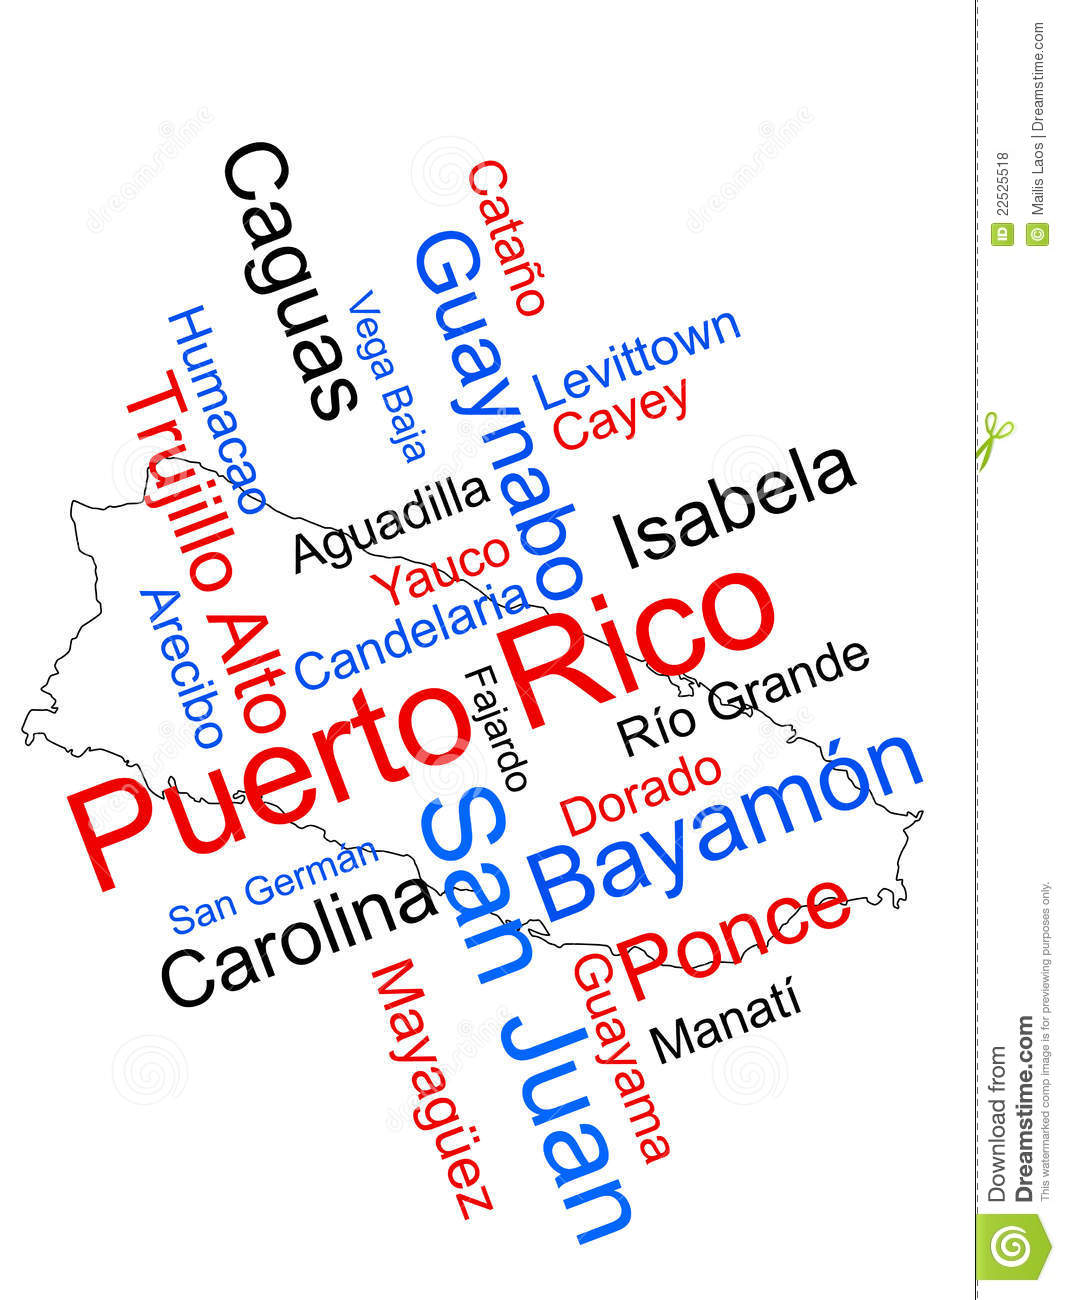 Puerto Rico map and cities stock vector. Illustration of cities ...